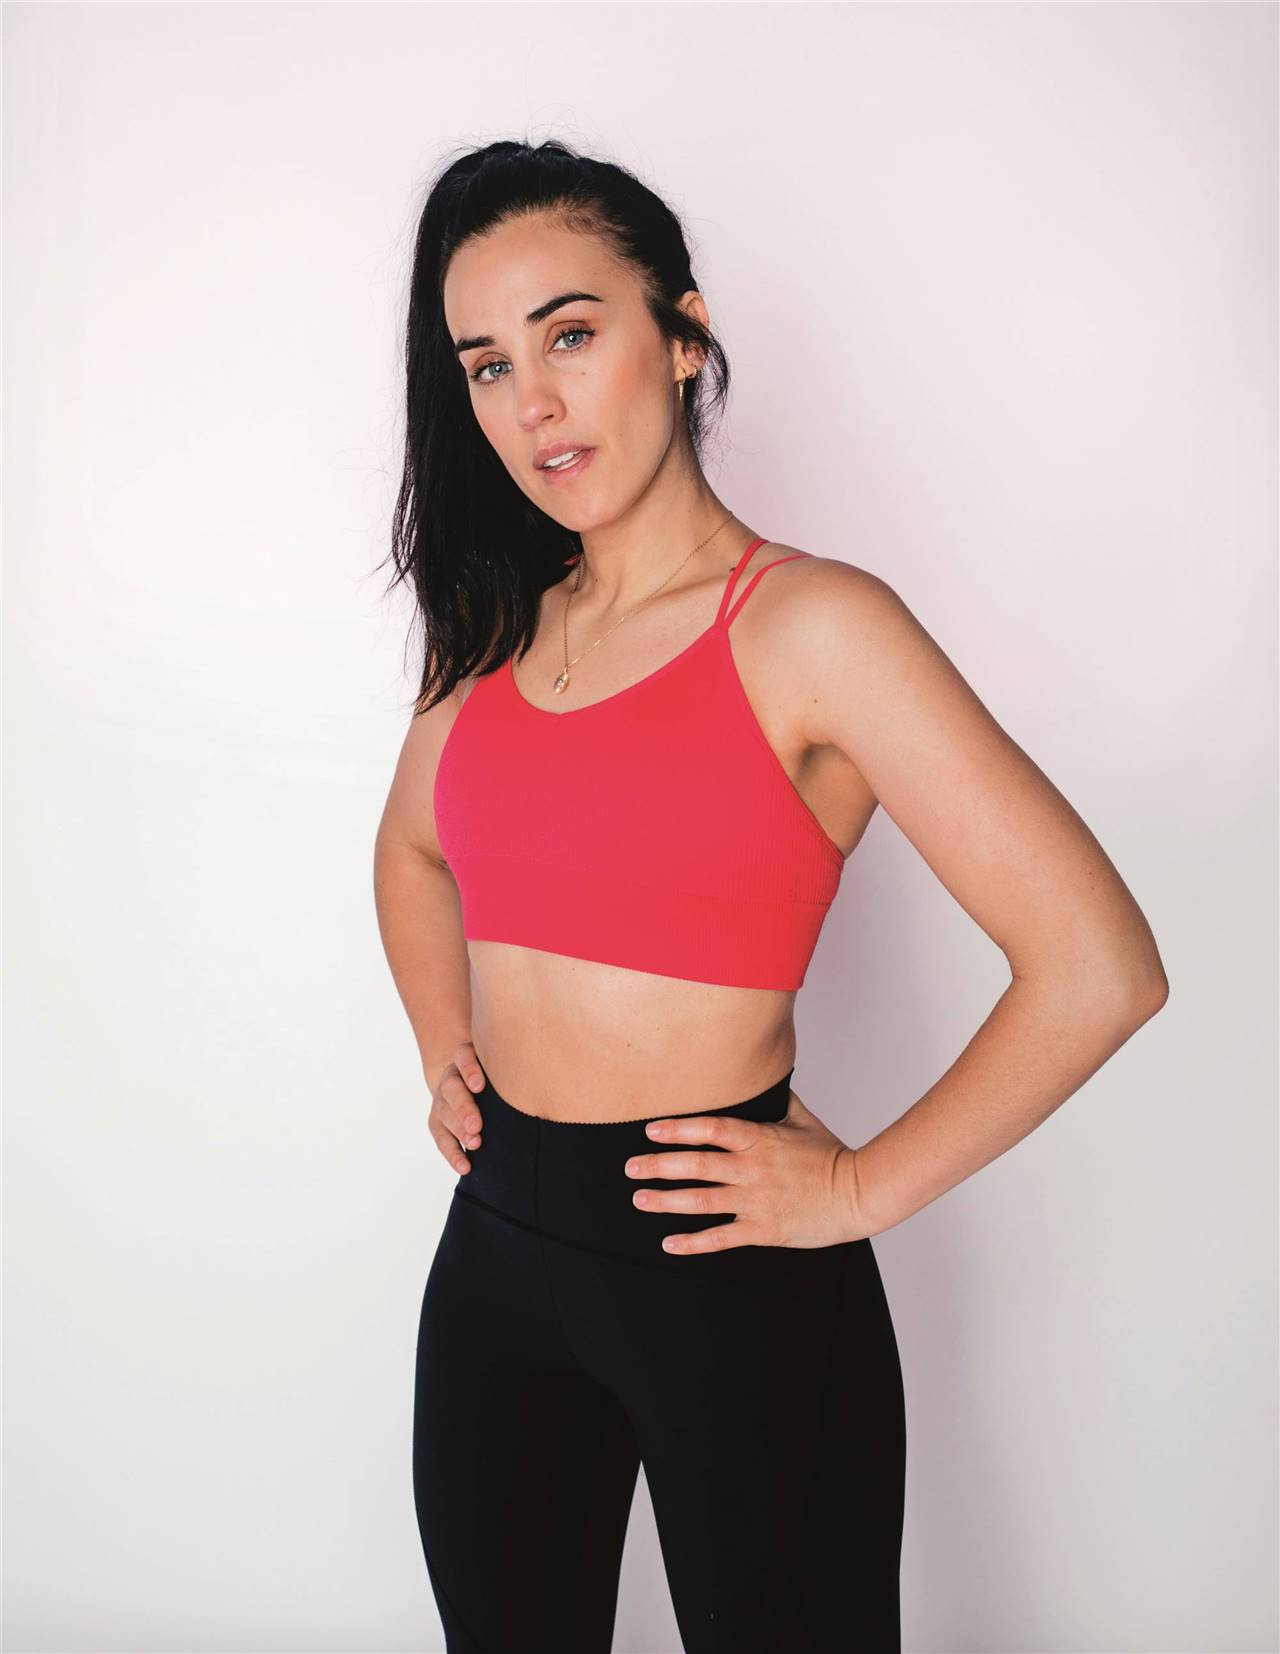 In shape with Patry Jordan: The 10 best videos to start exercising and losing weight